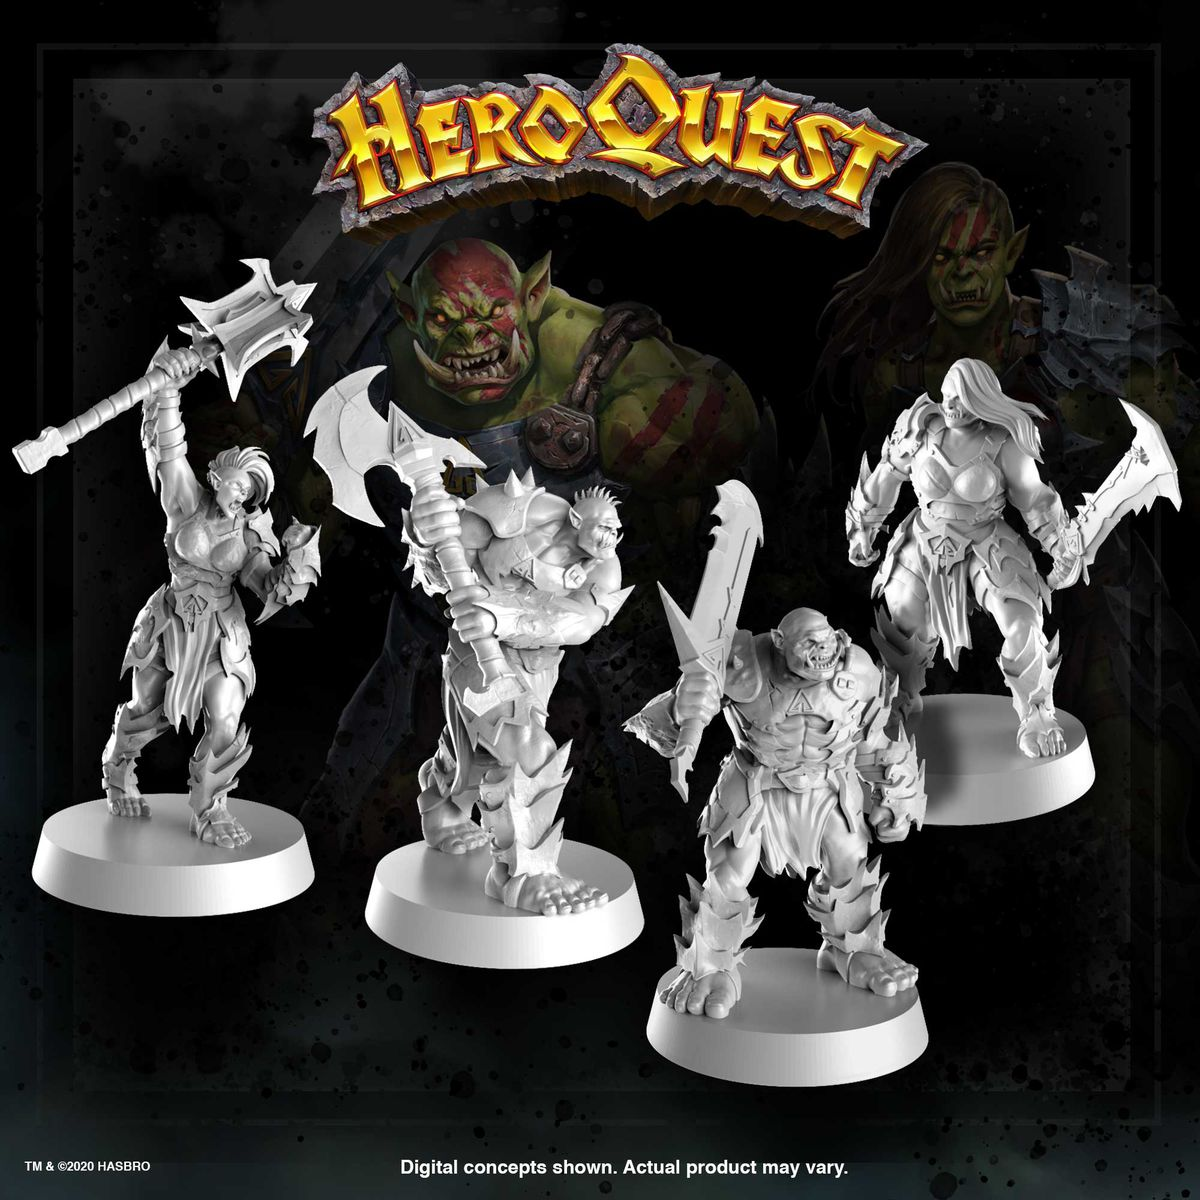 Alternate sculpts for the game's ork characters include two female-presenting images.